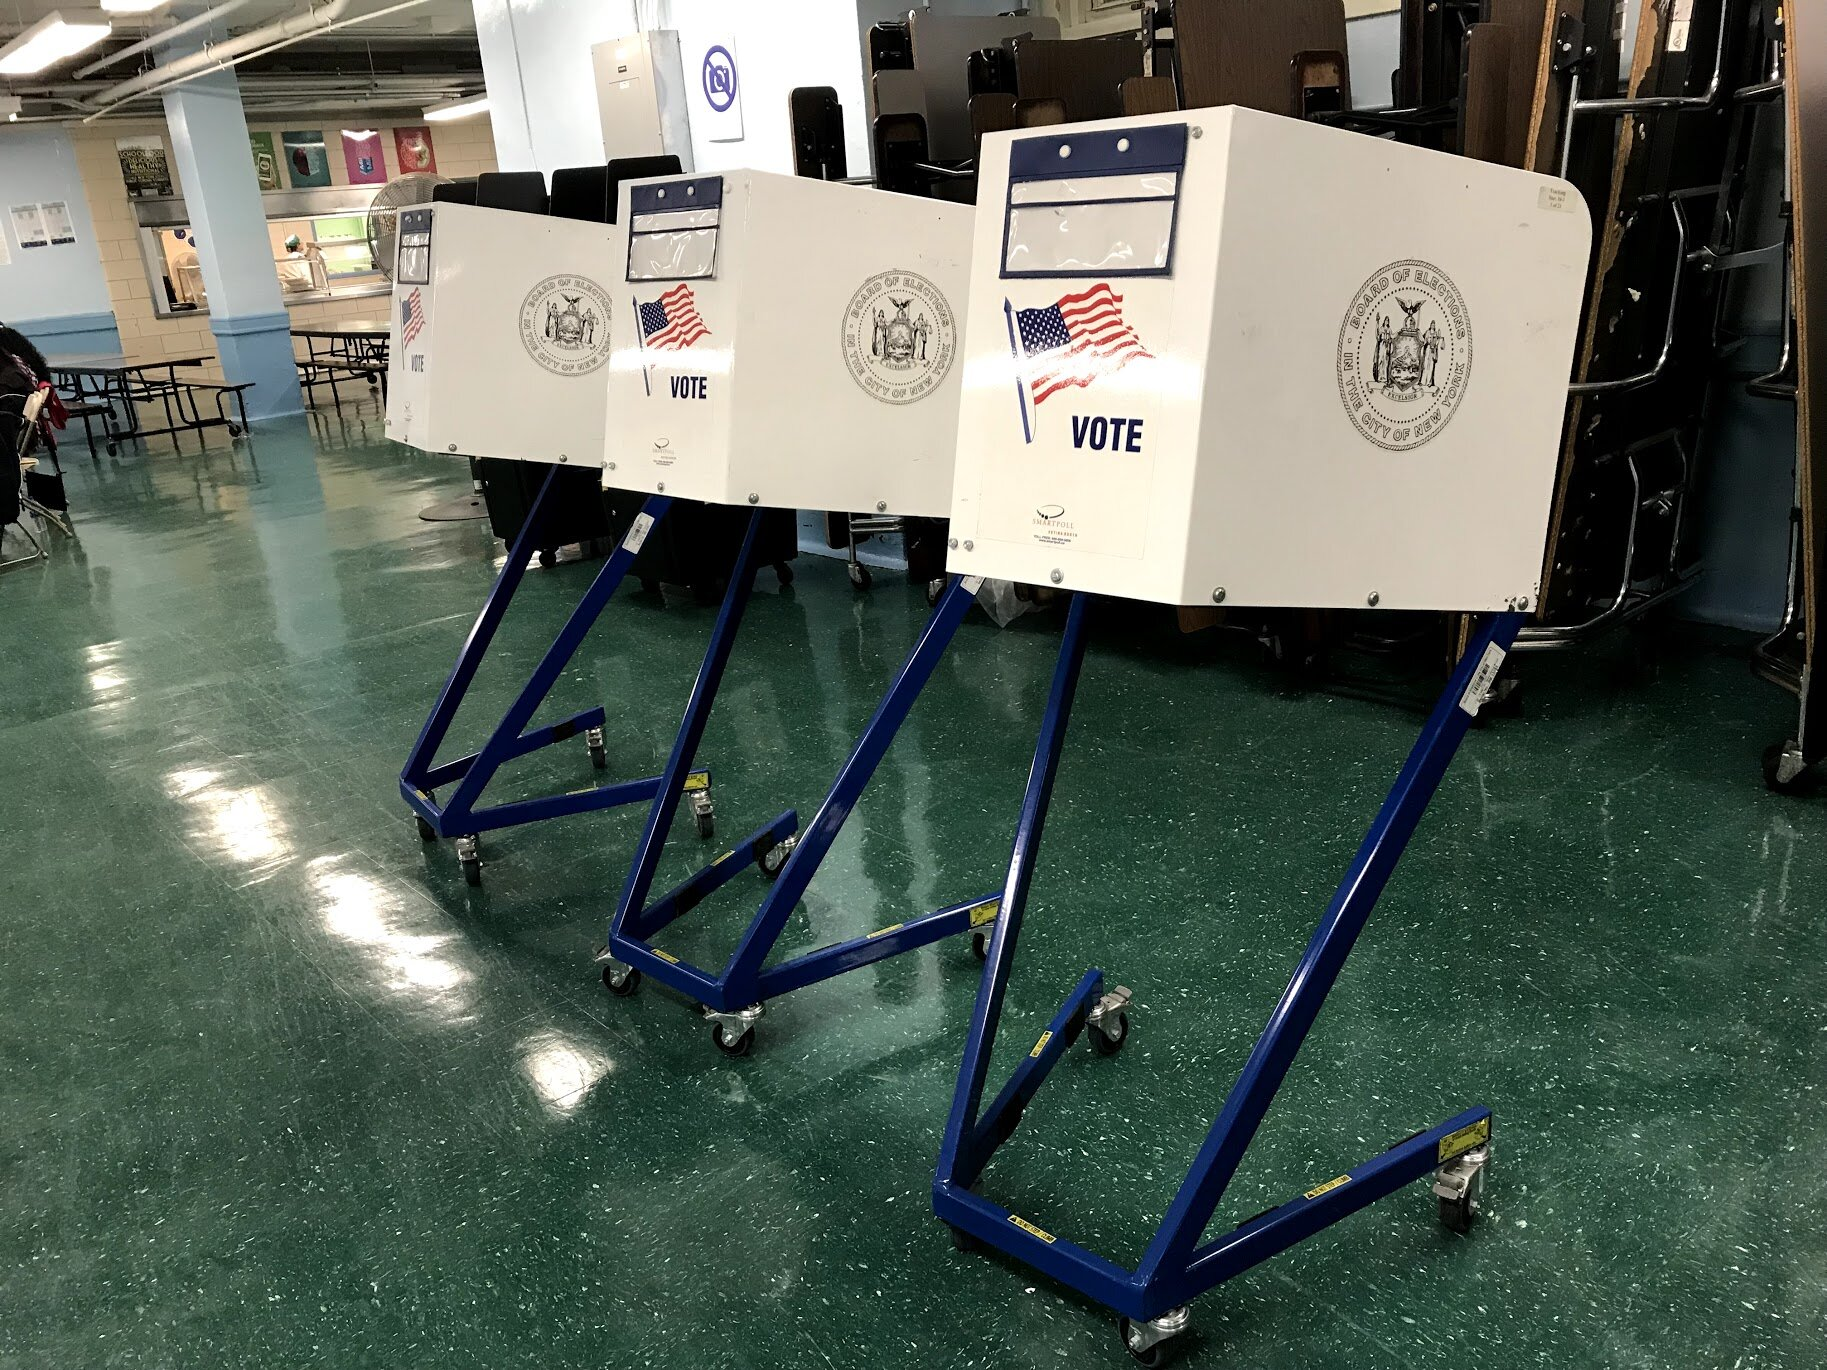 Voting booths at a polling place in Ridgewood during the 2019 primary.  Eagle  photo by David Brand